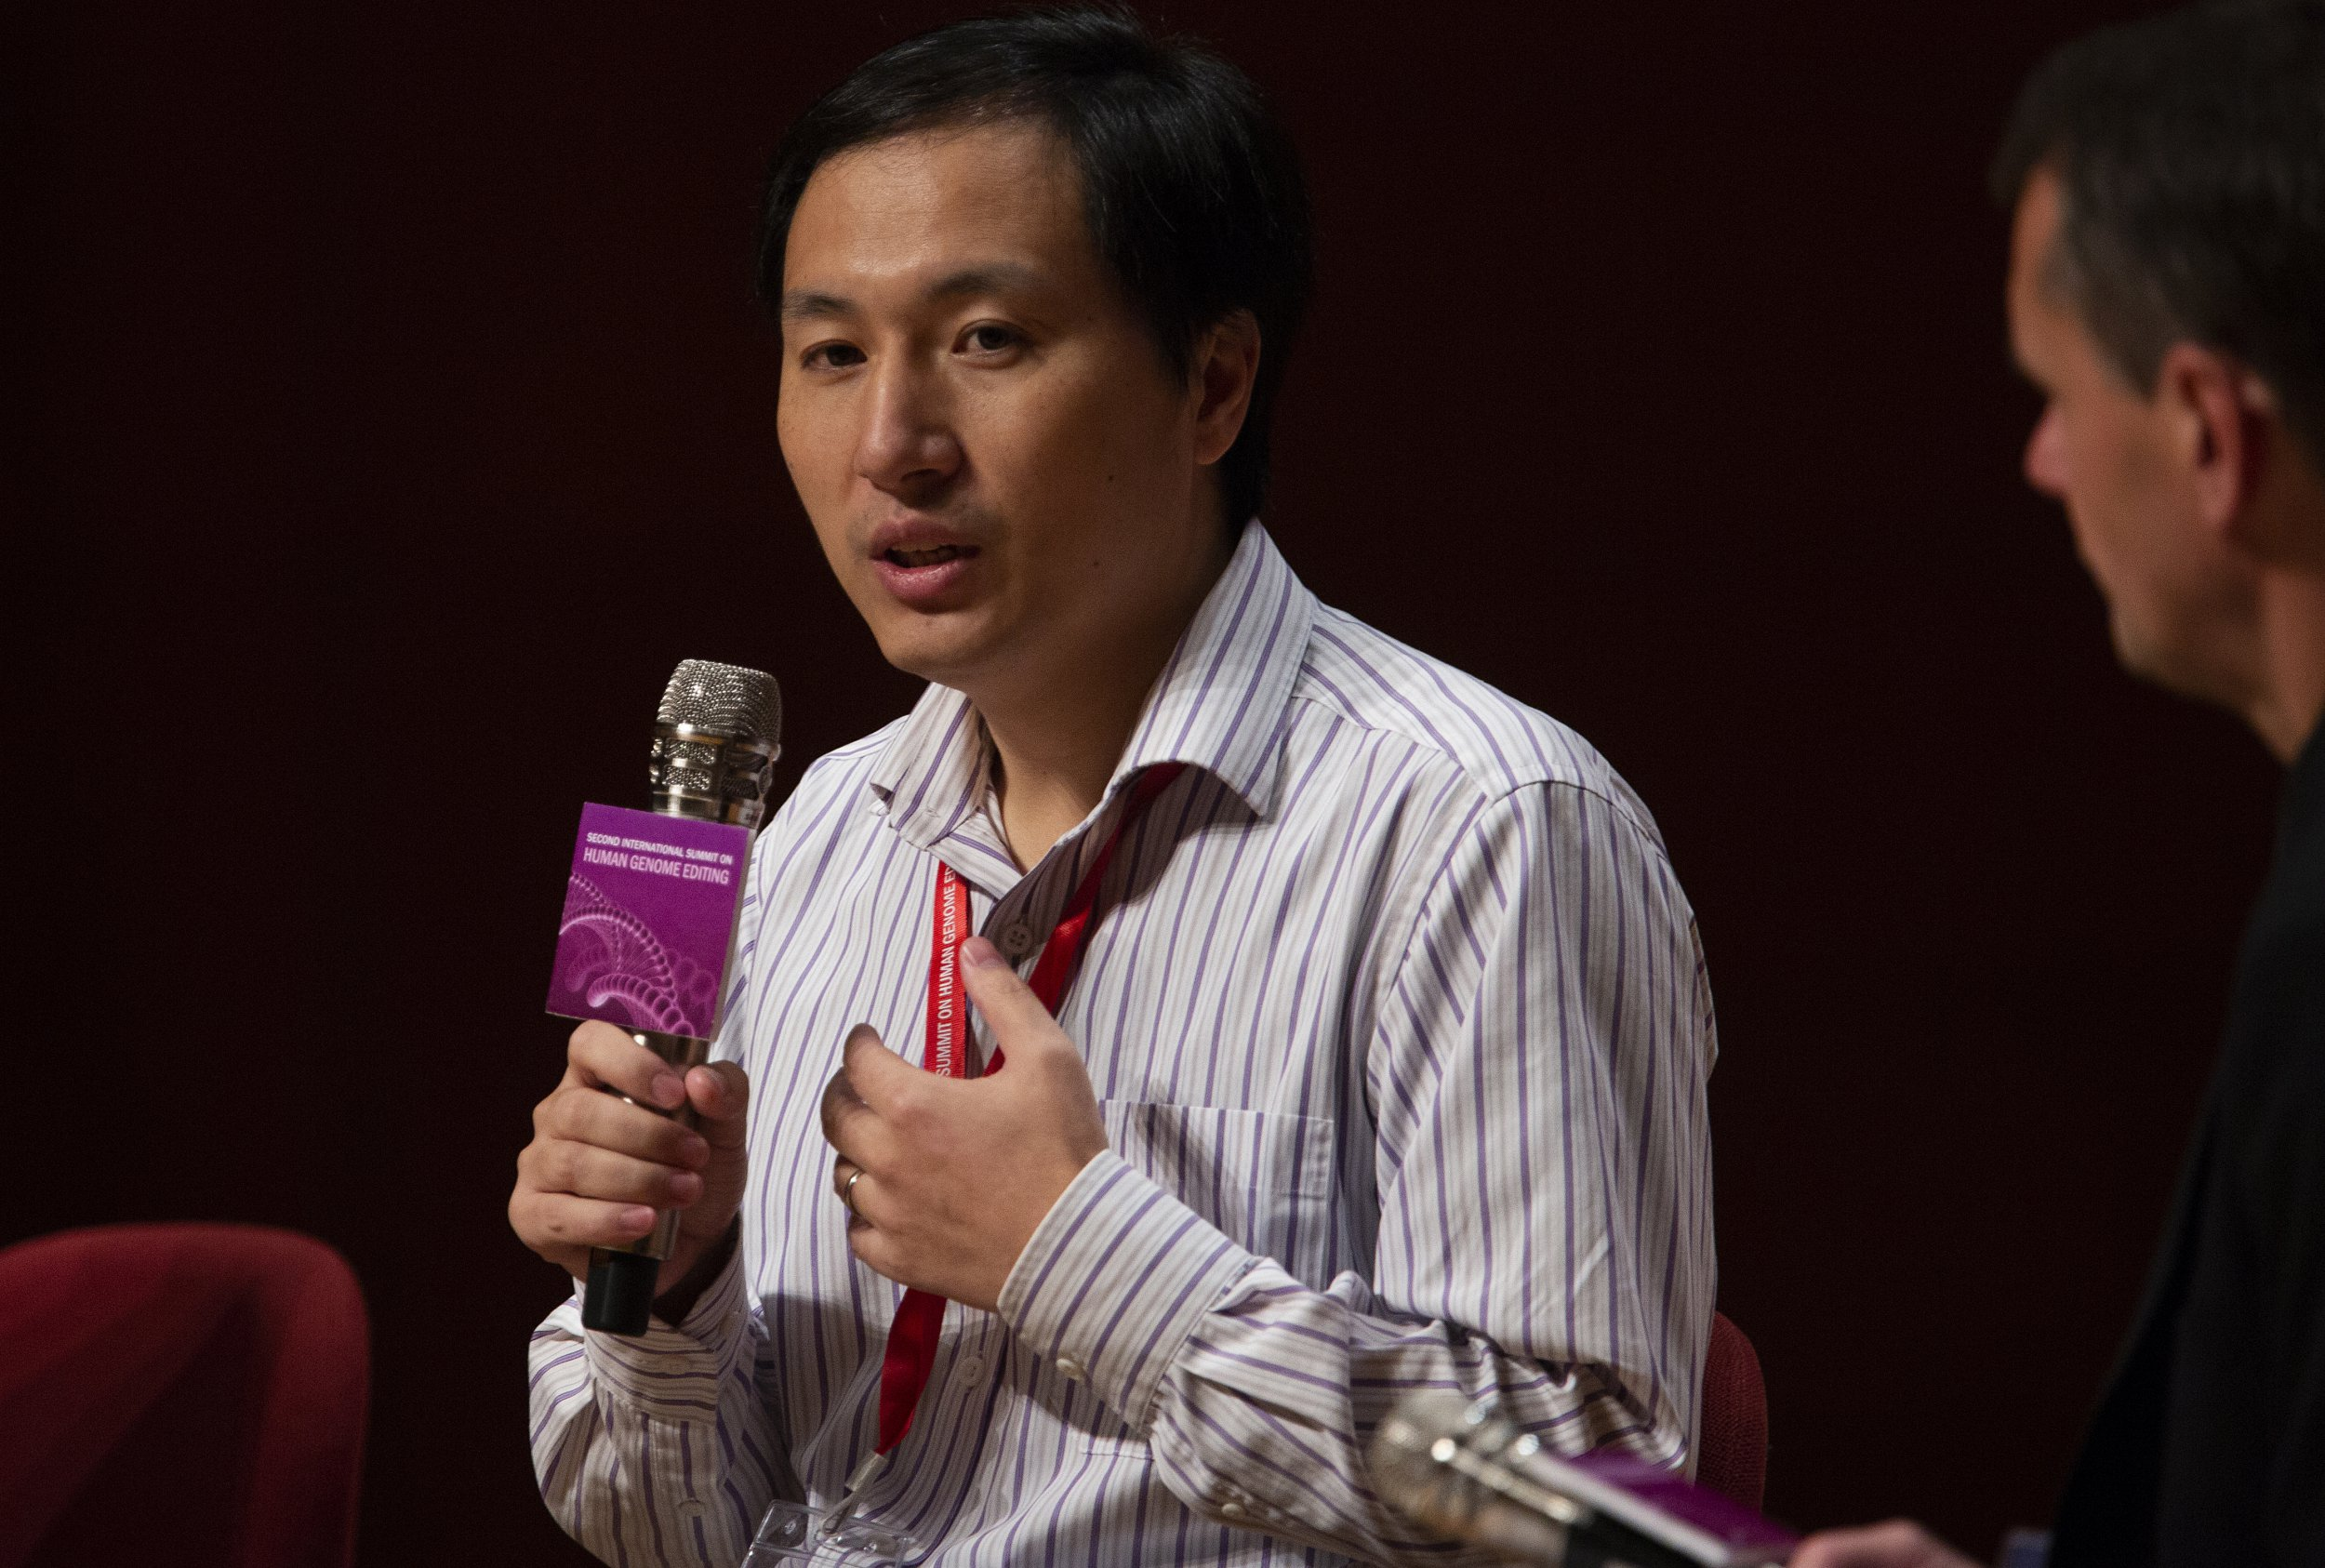 epa07194188 Mainland Chinese scientist He Jiankui defends his work during a panel discussion at the Second International Summit on Human Genome Editing, at the University of Hong Kong in Hong Kong, China, 28 November 2018. He Jiankui claims to have created the world's first genetically-edited twin babies, named Lulu and Nana, and has defended his work amid a storm of criticism from the world's scientific community. Critics have called the scientist's work medically unnecessary and ethically questionable. EPA/ALEX HOFFORD